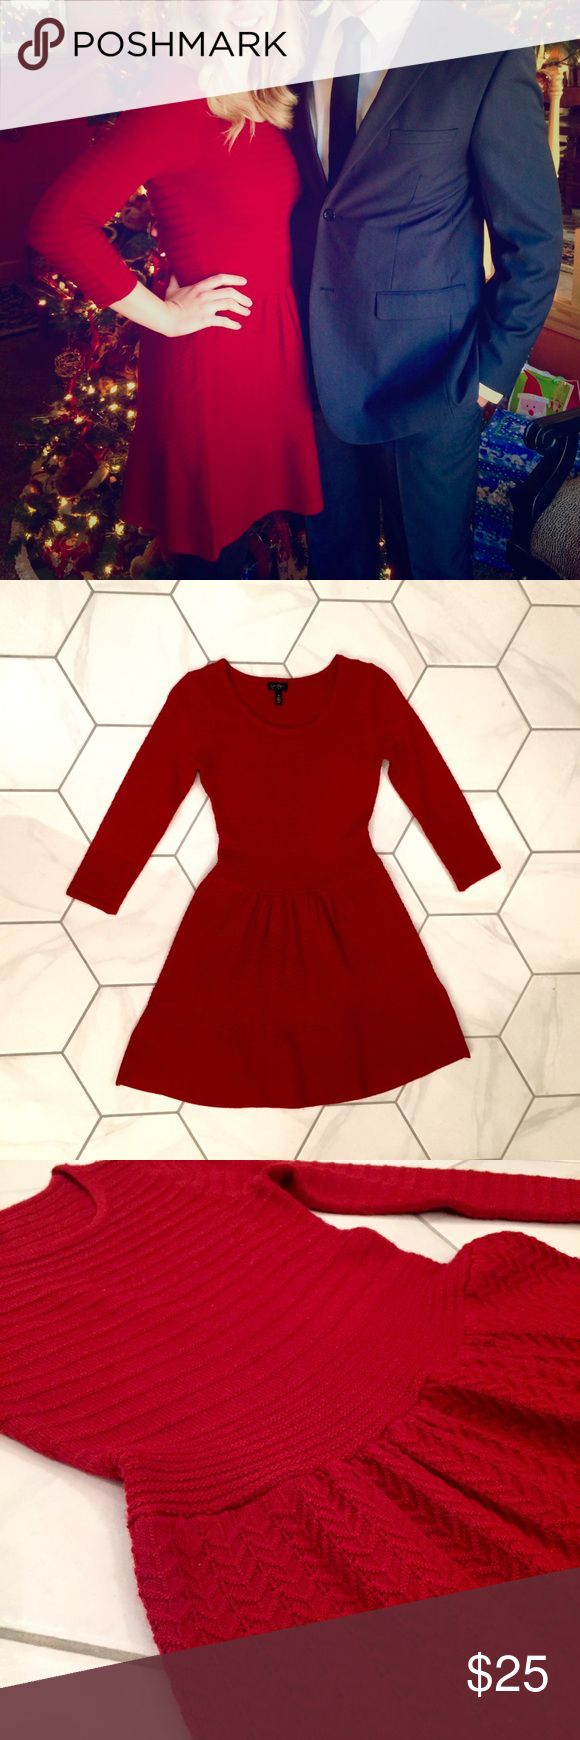 Jessica Simpson Red Sweater Dress with 3/4 Sleeves This is such a perfect dress for the holiday season! It's the perfect red and it feels like a cozy sweater. It was worn just once for a wedding and hasn't been worn since. Very very mild pilling on the bodice. Jessica Simpson Dresses